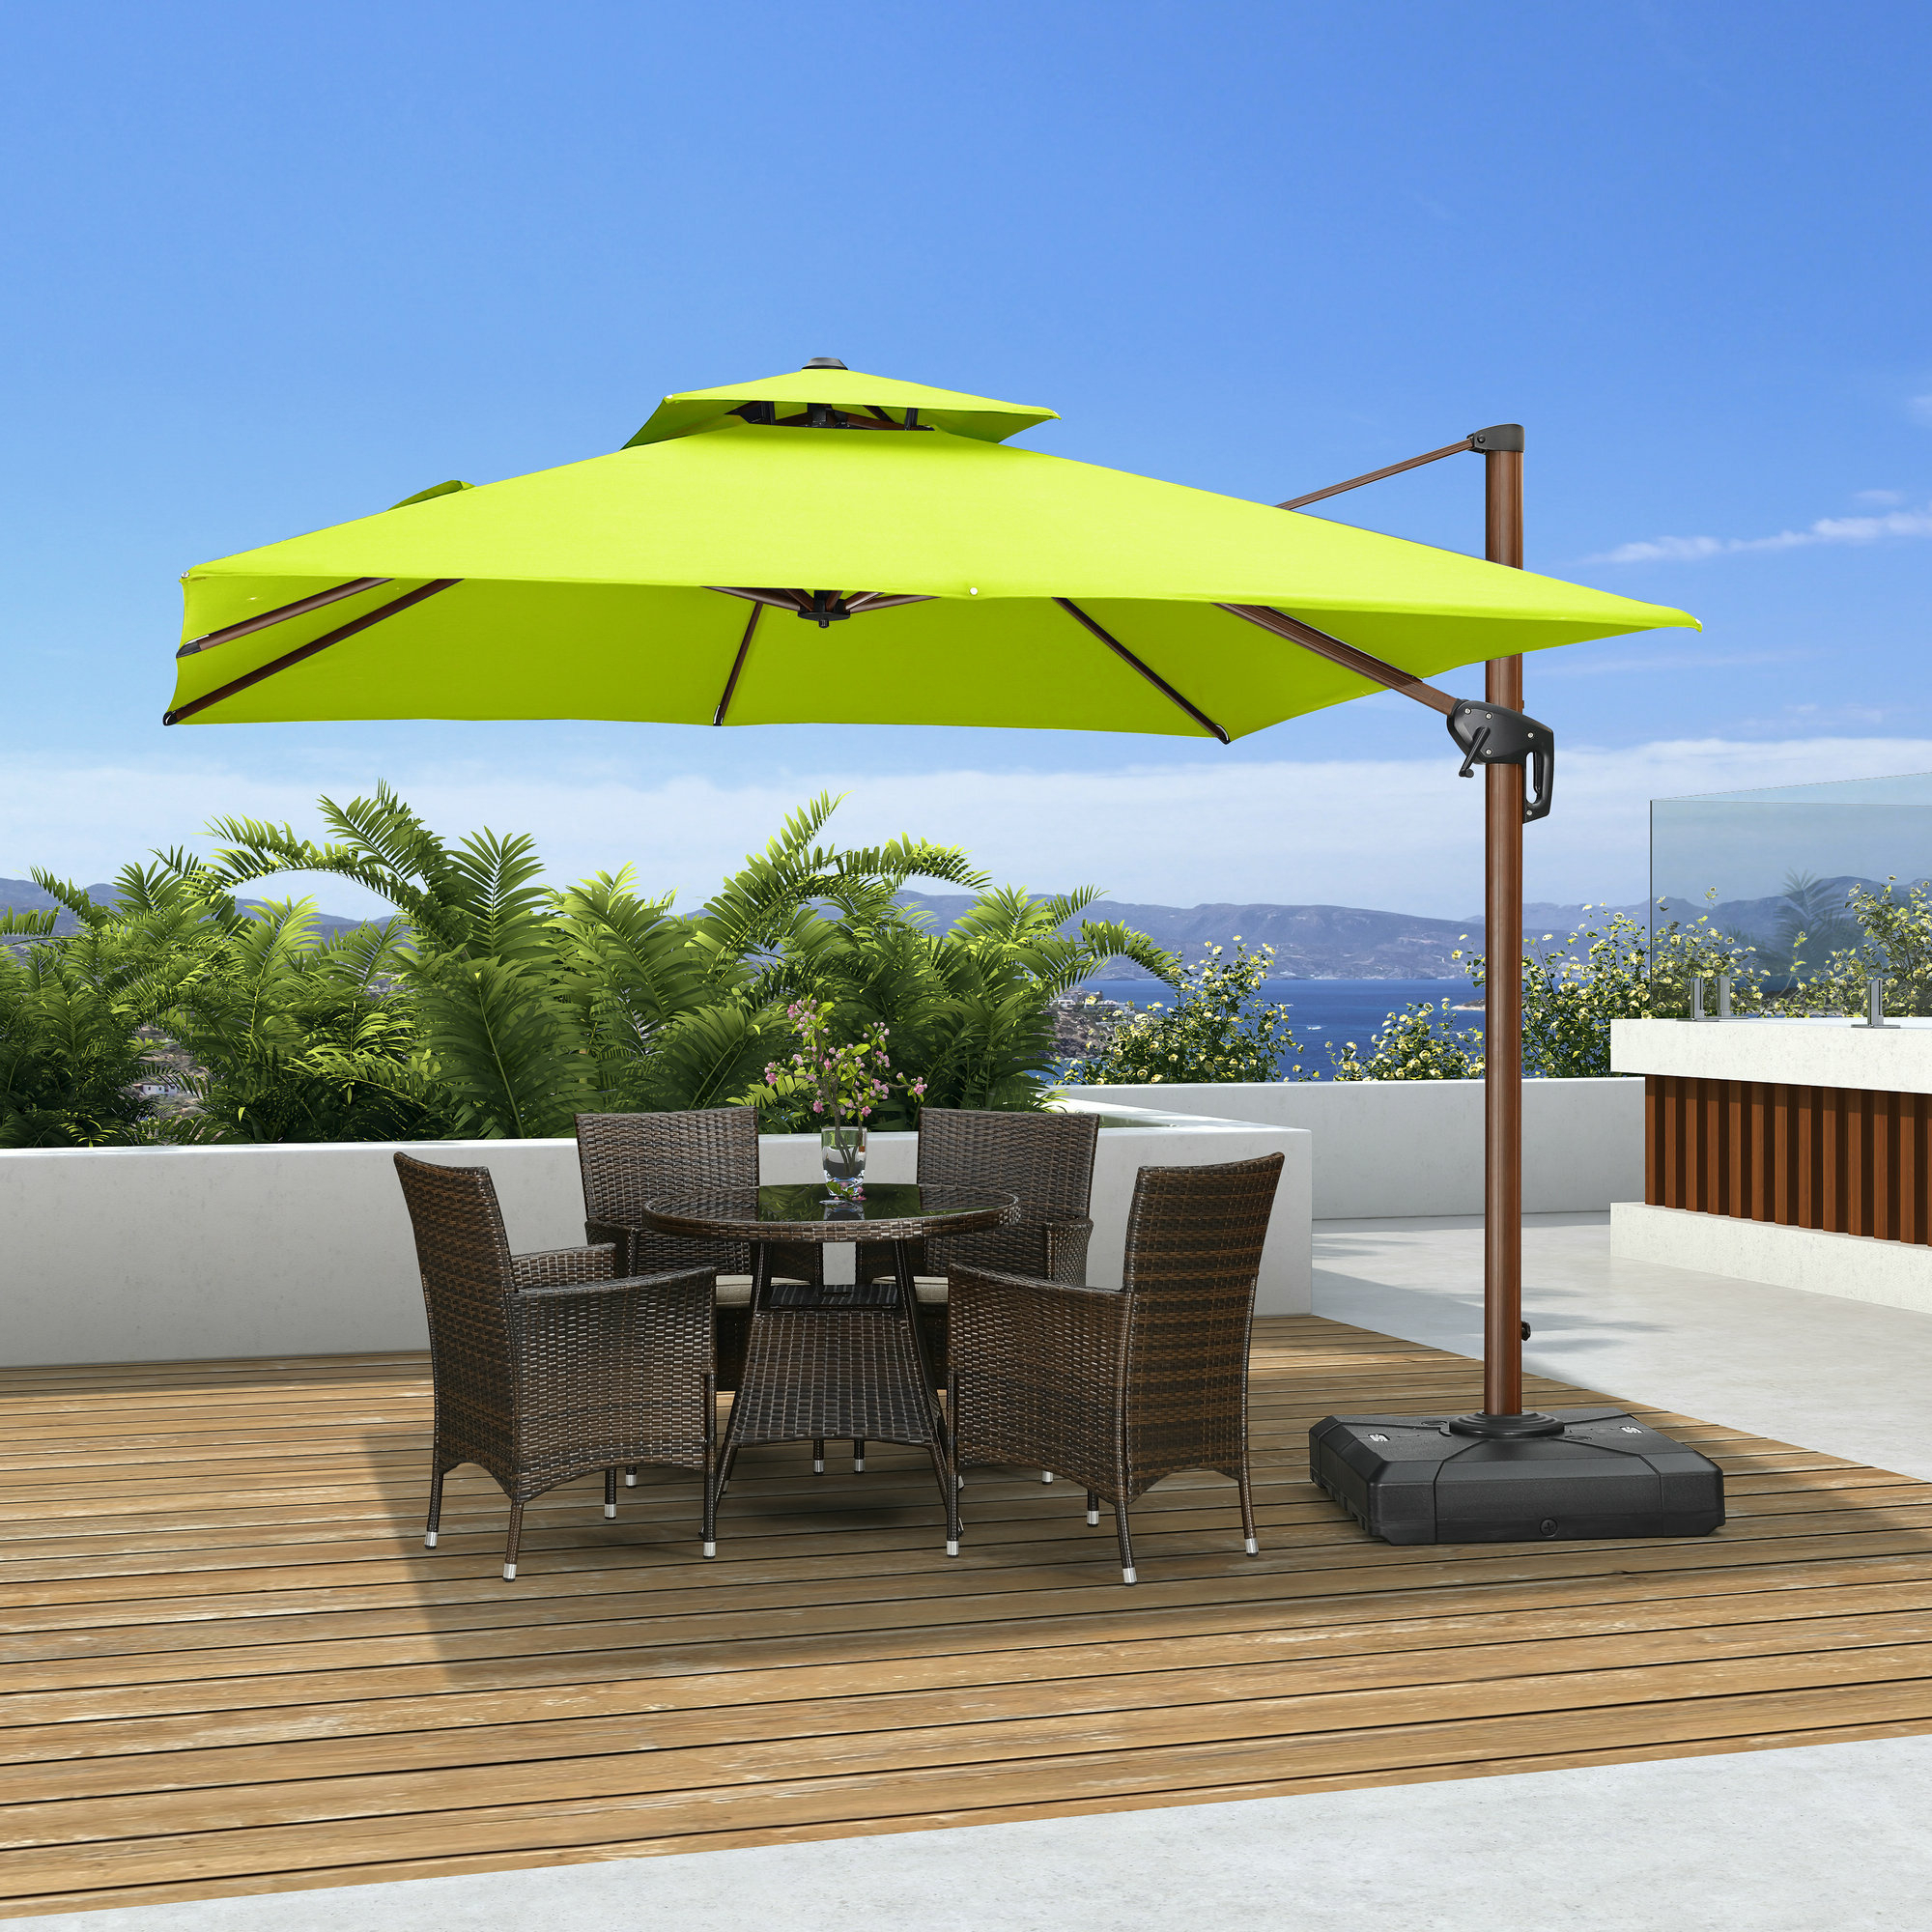 Most Recent Waddell 10' Square Cantilever Umbrella Regarding Lytham Cantilever Umbrellas (Gallery 12 of 20)